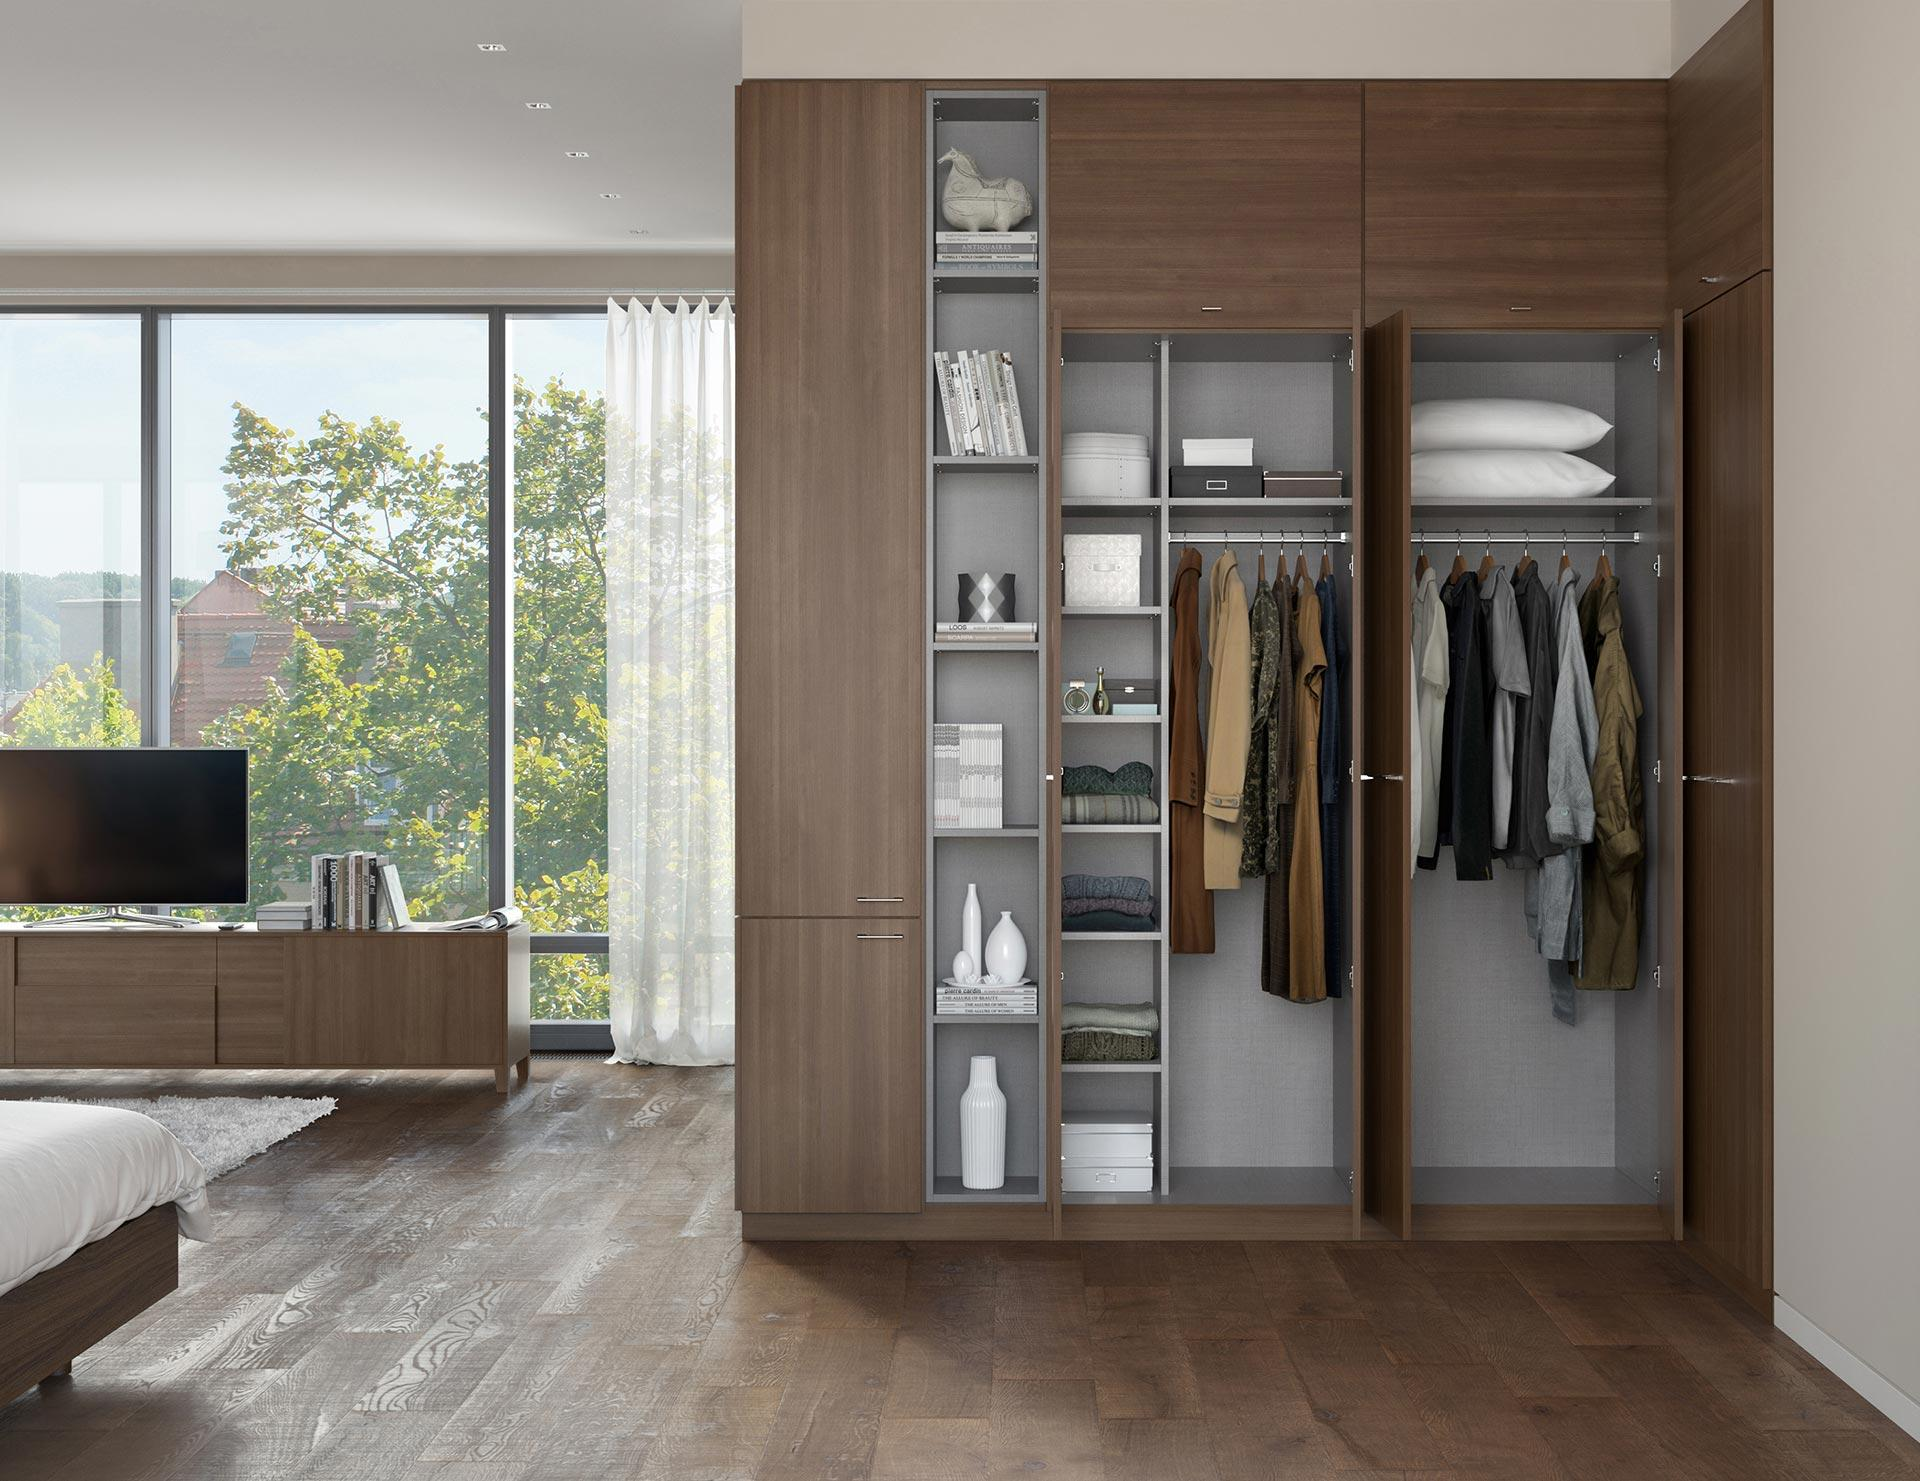 California Closets Calgary - Built-in Wardrobe